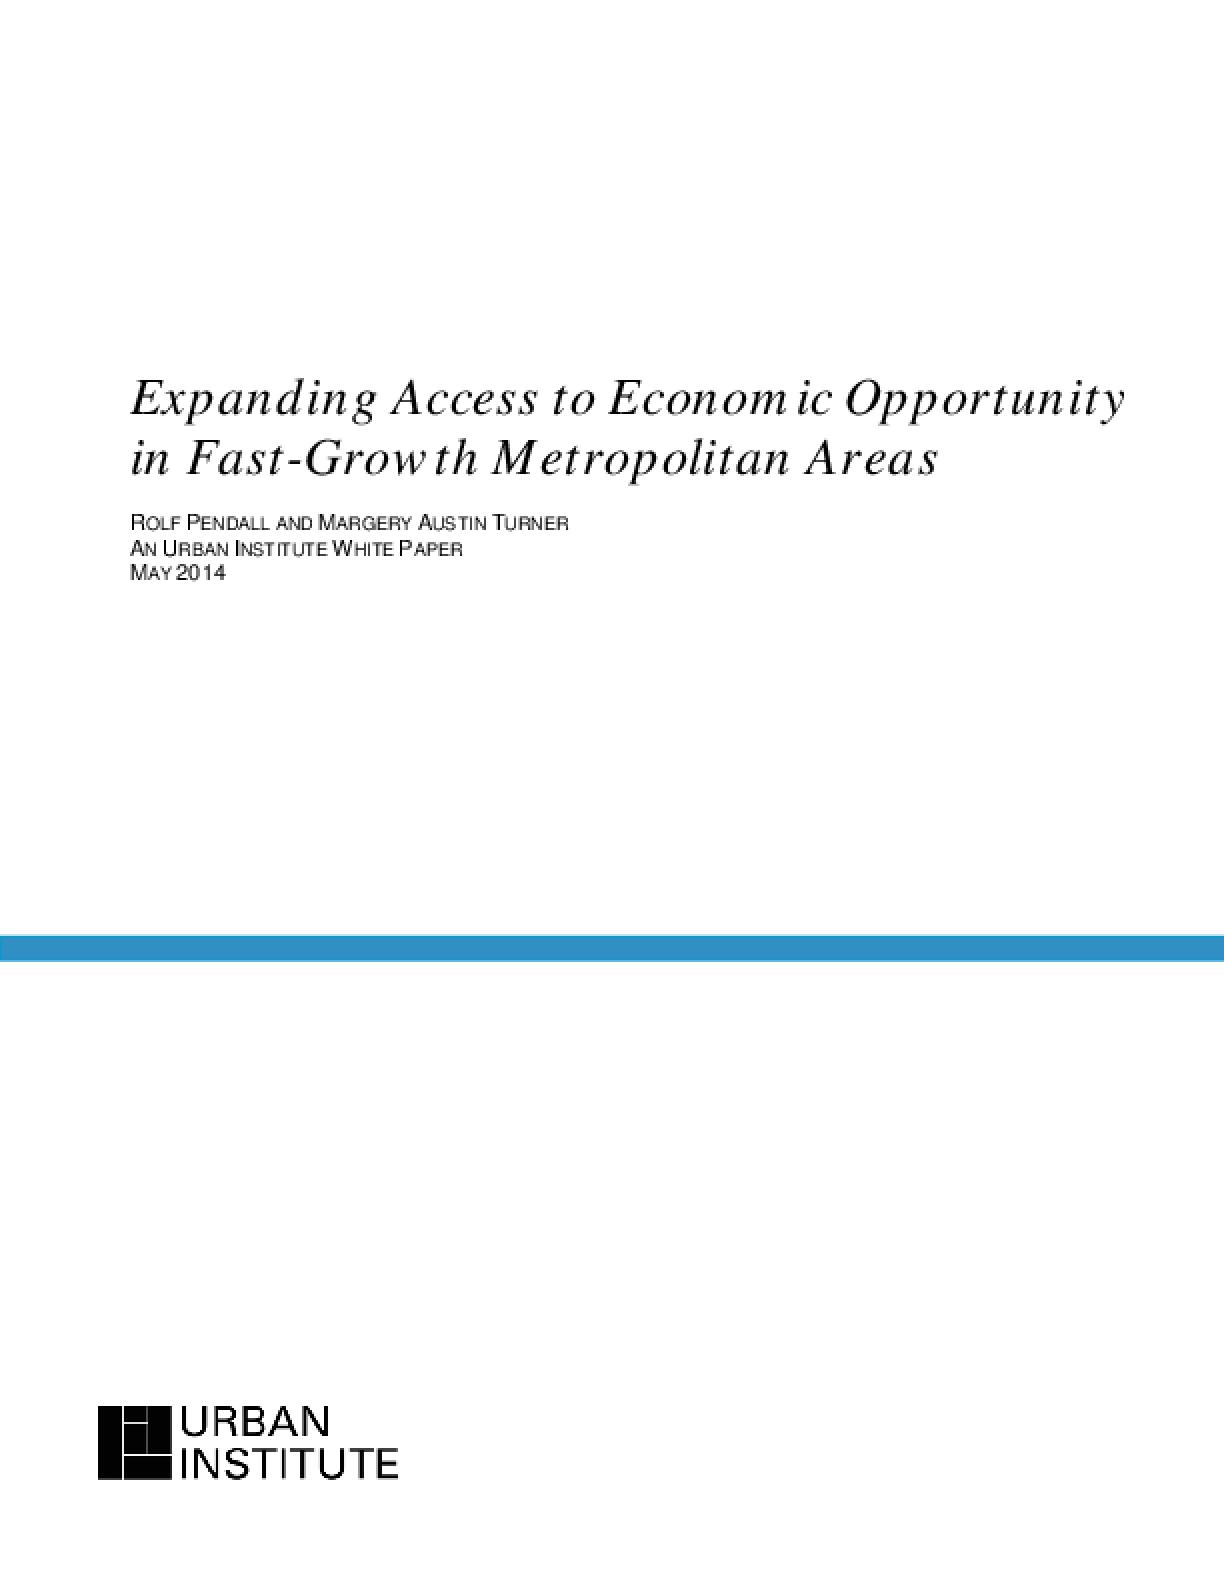 Expanding Access to Economic Opportunity in Fast-Growth Metropolitan Areas